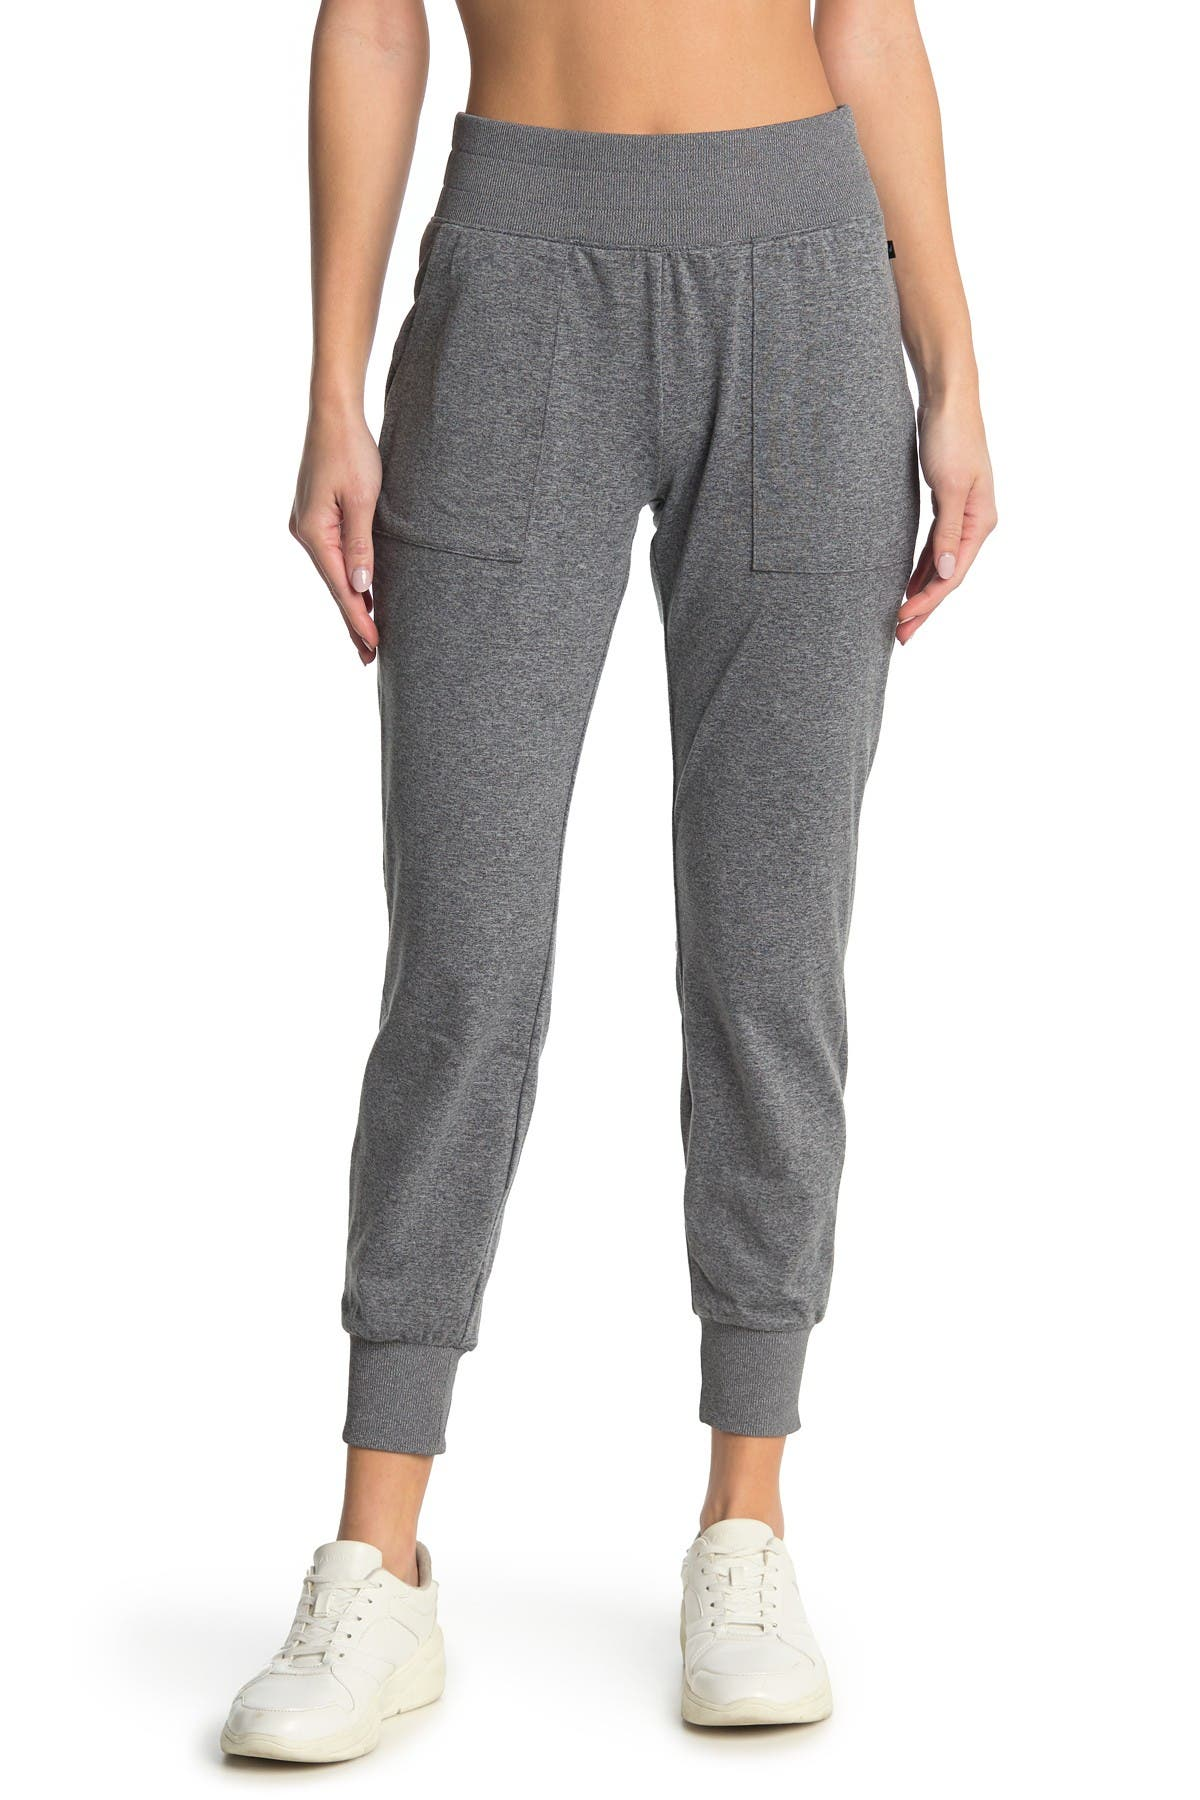 Image of Jessica Simpson Jodie Knit Jogger Pants